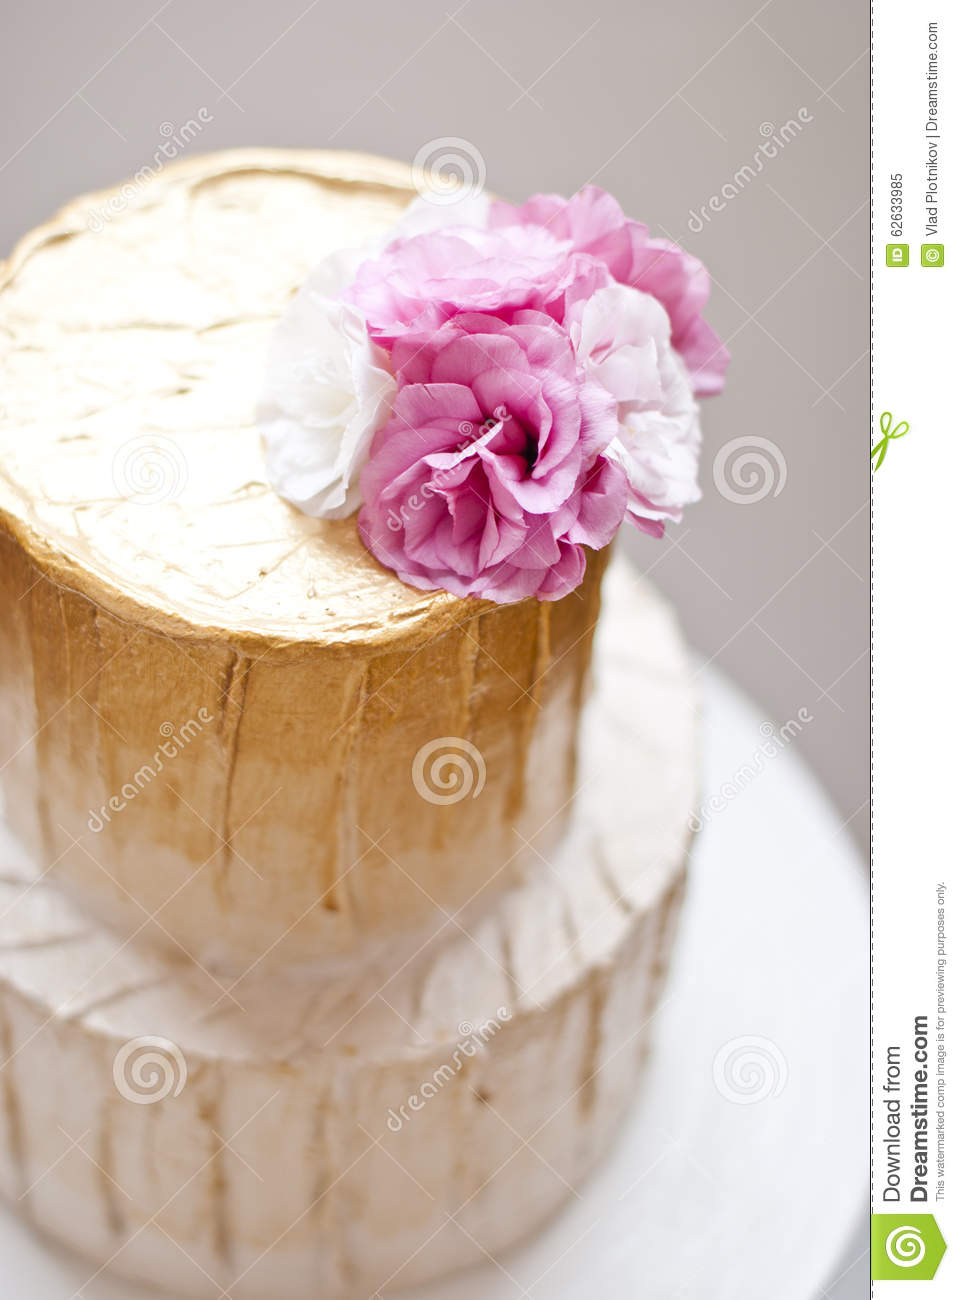 Gold And White Wedding Cake Stock Image Image Of Setting Cater